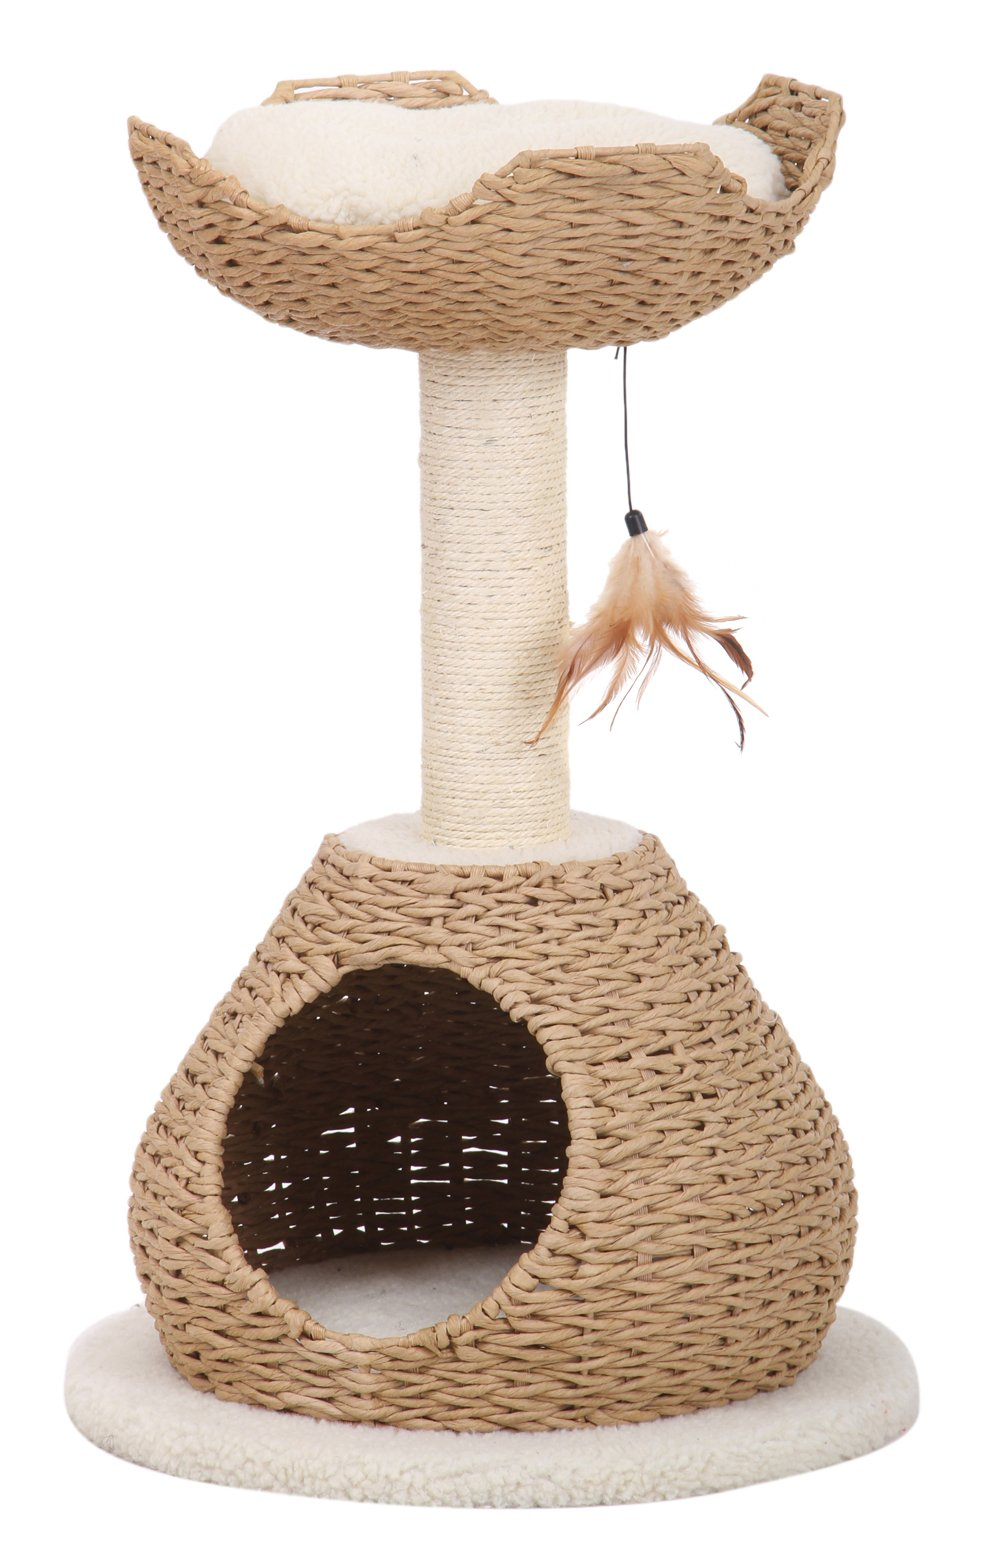 Petpals Hand Made Paper Rope Cat Tree Condo with Scratching Post, Perch and Interactive Feather Toy, Natural by PetPals (Image #1)